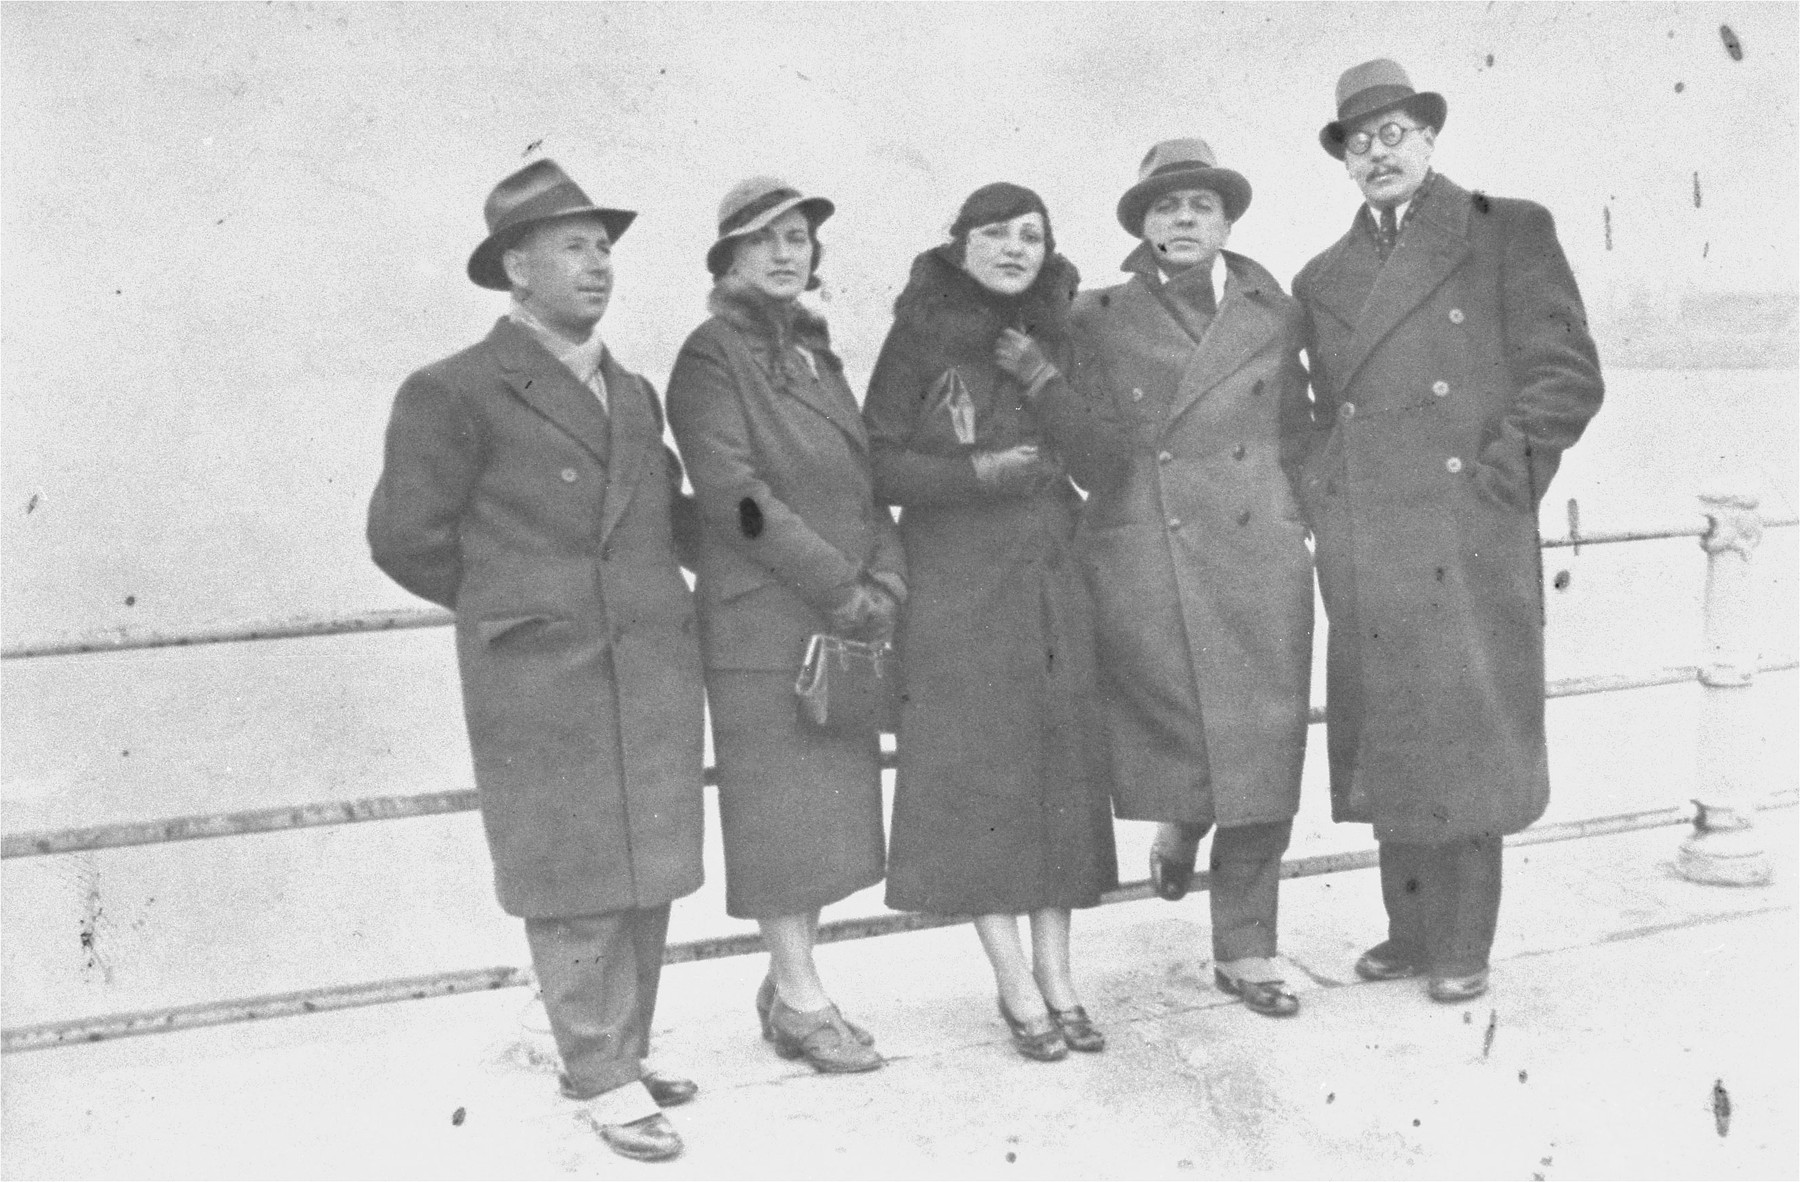 Group portrait of Jewish couples from the Balkans on board a ship during a sightseeing excursion to Palestine.  Among those pictured are Beno and Blanka Kupfermann (left).